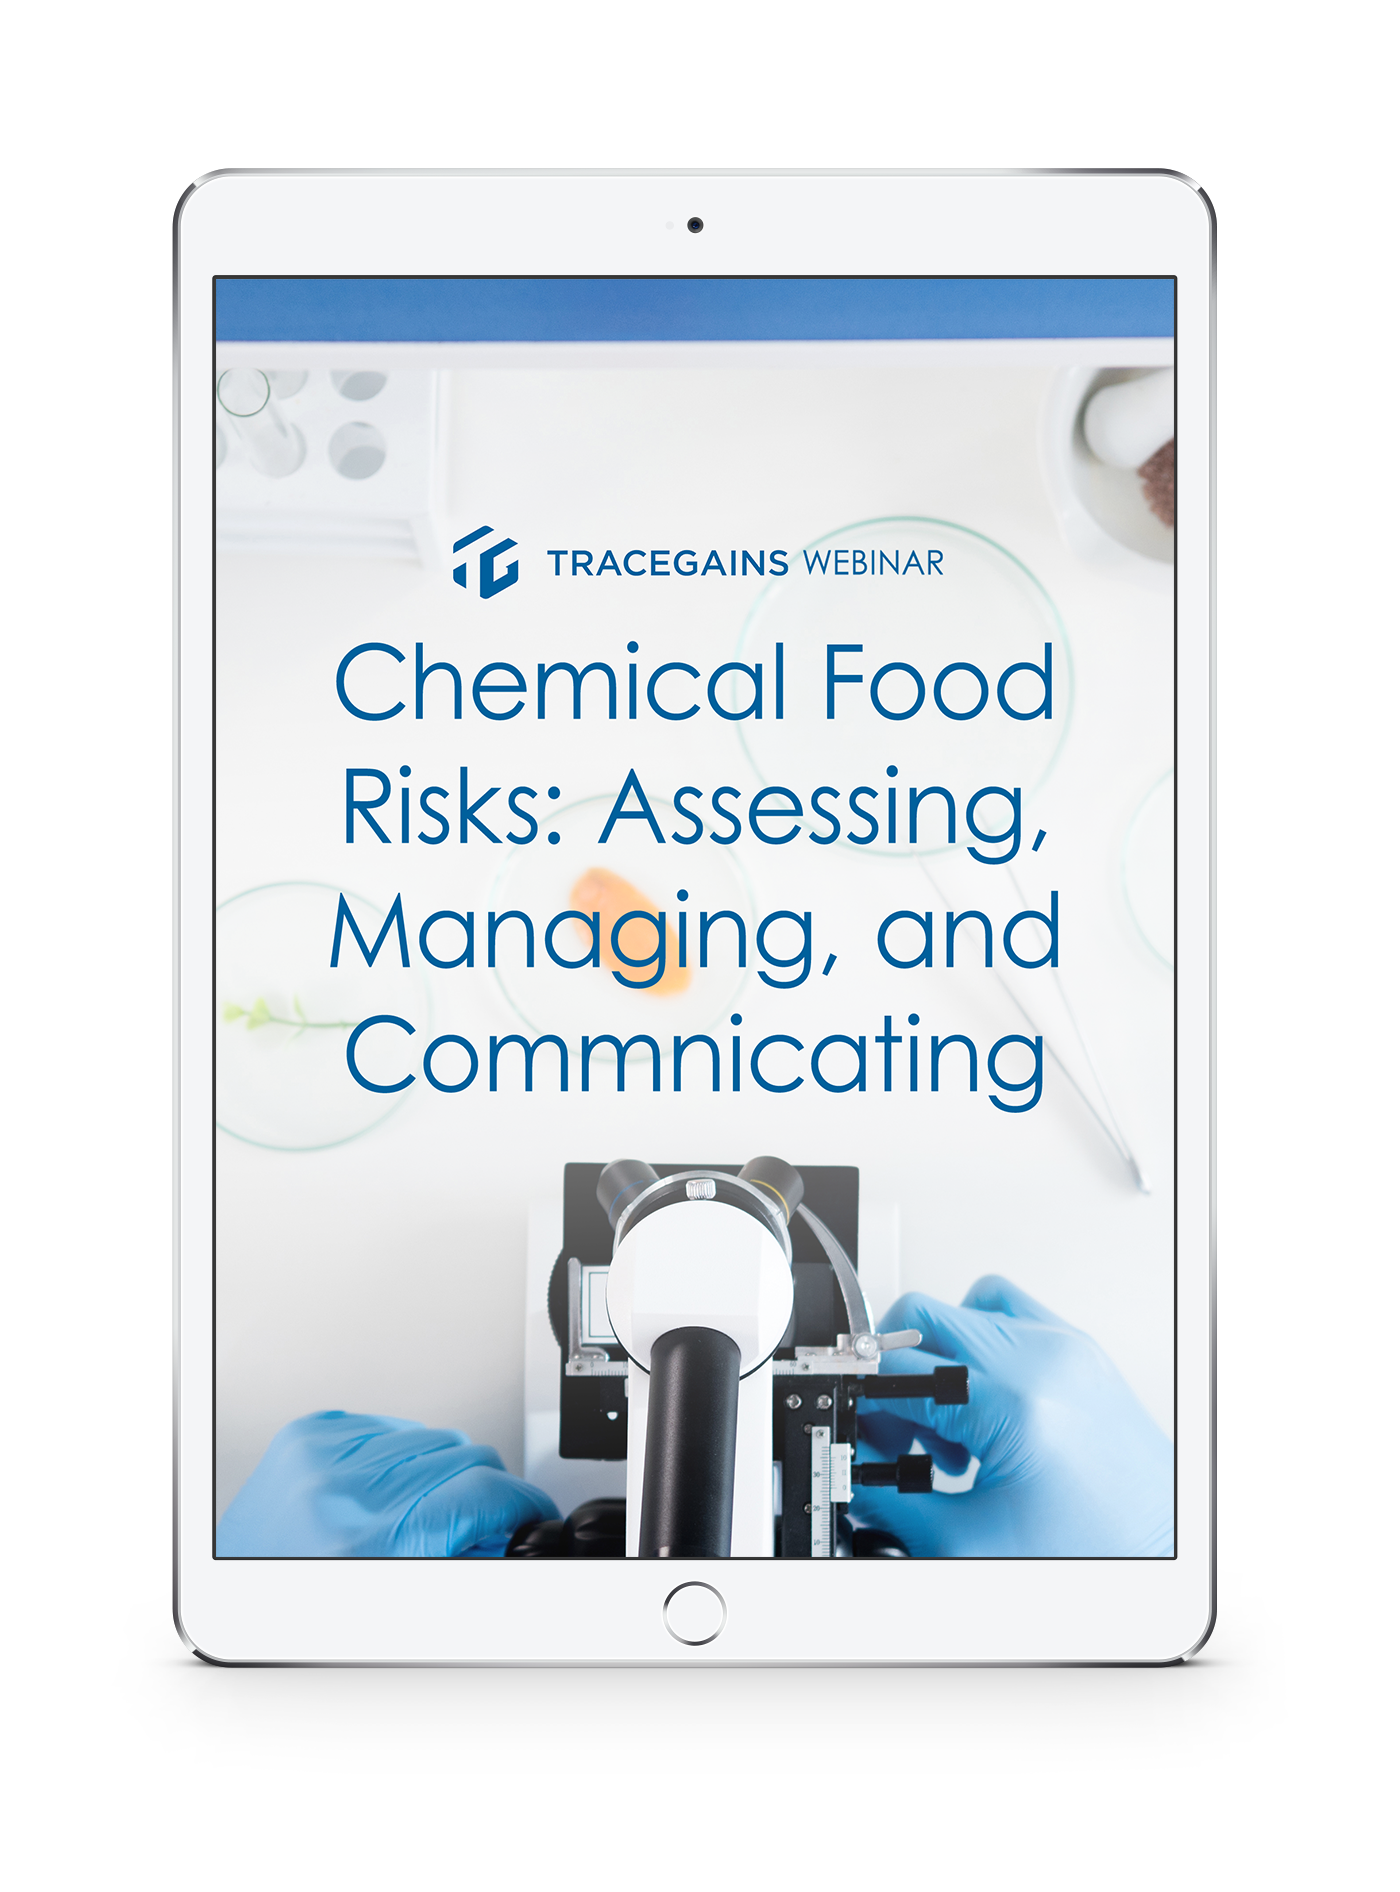 chemical-food-risks-webinar-ipad